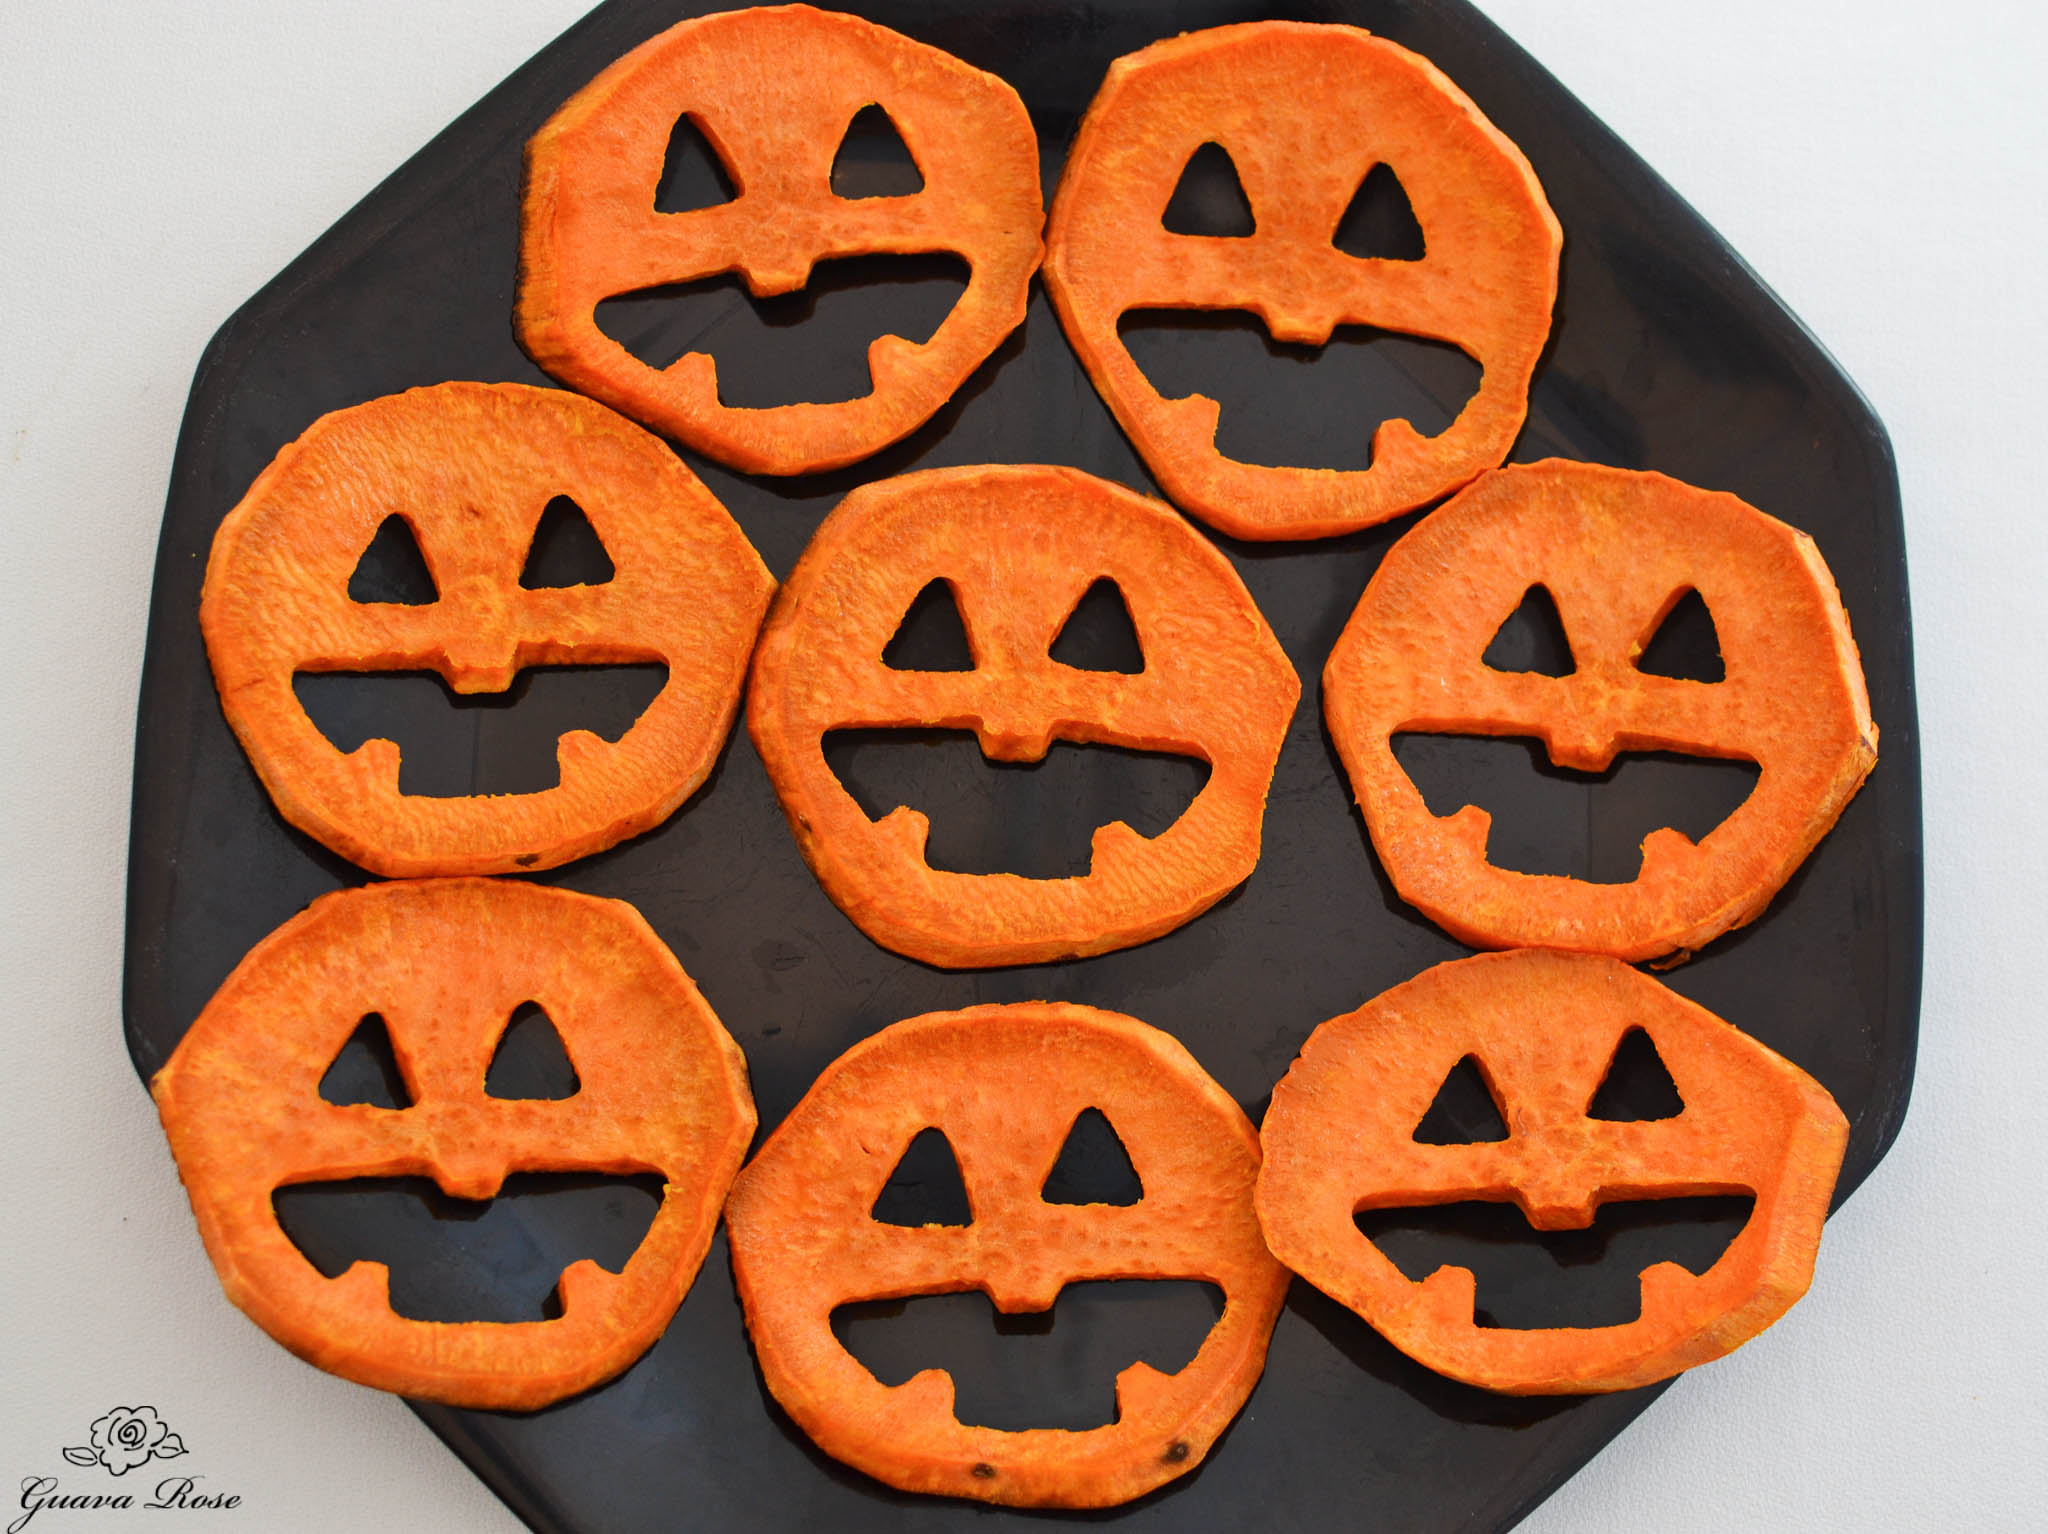 Roasted Sweet potato jack-o-lanterns